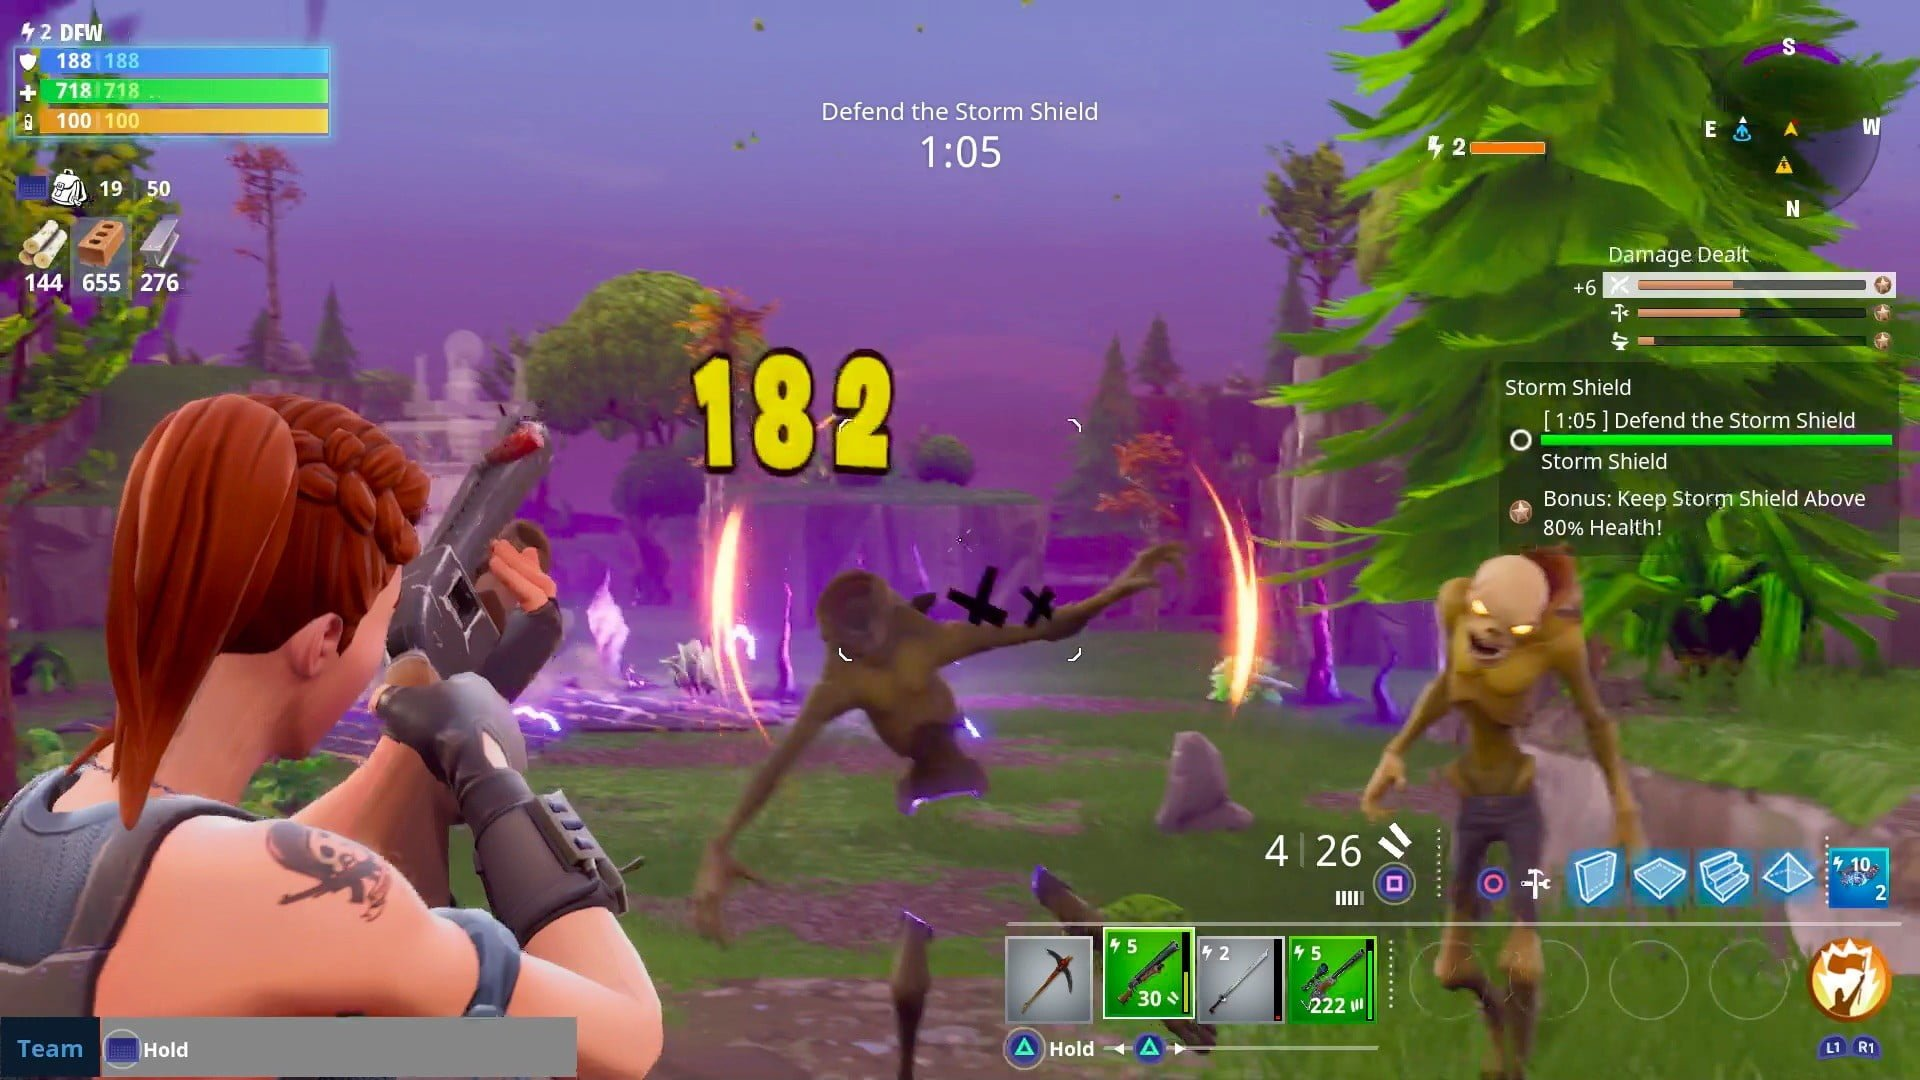 Fortnite - More than 78.3 million Players served in August